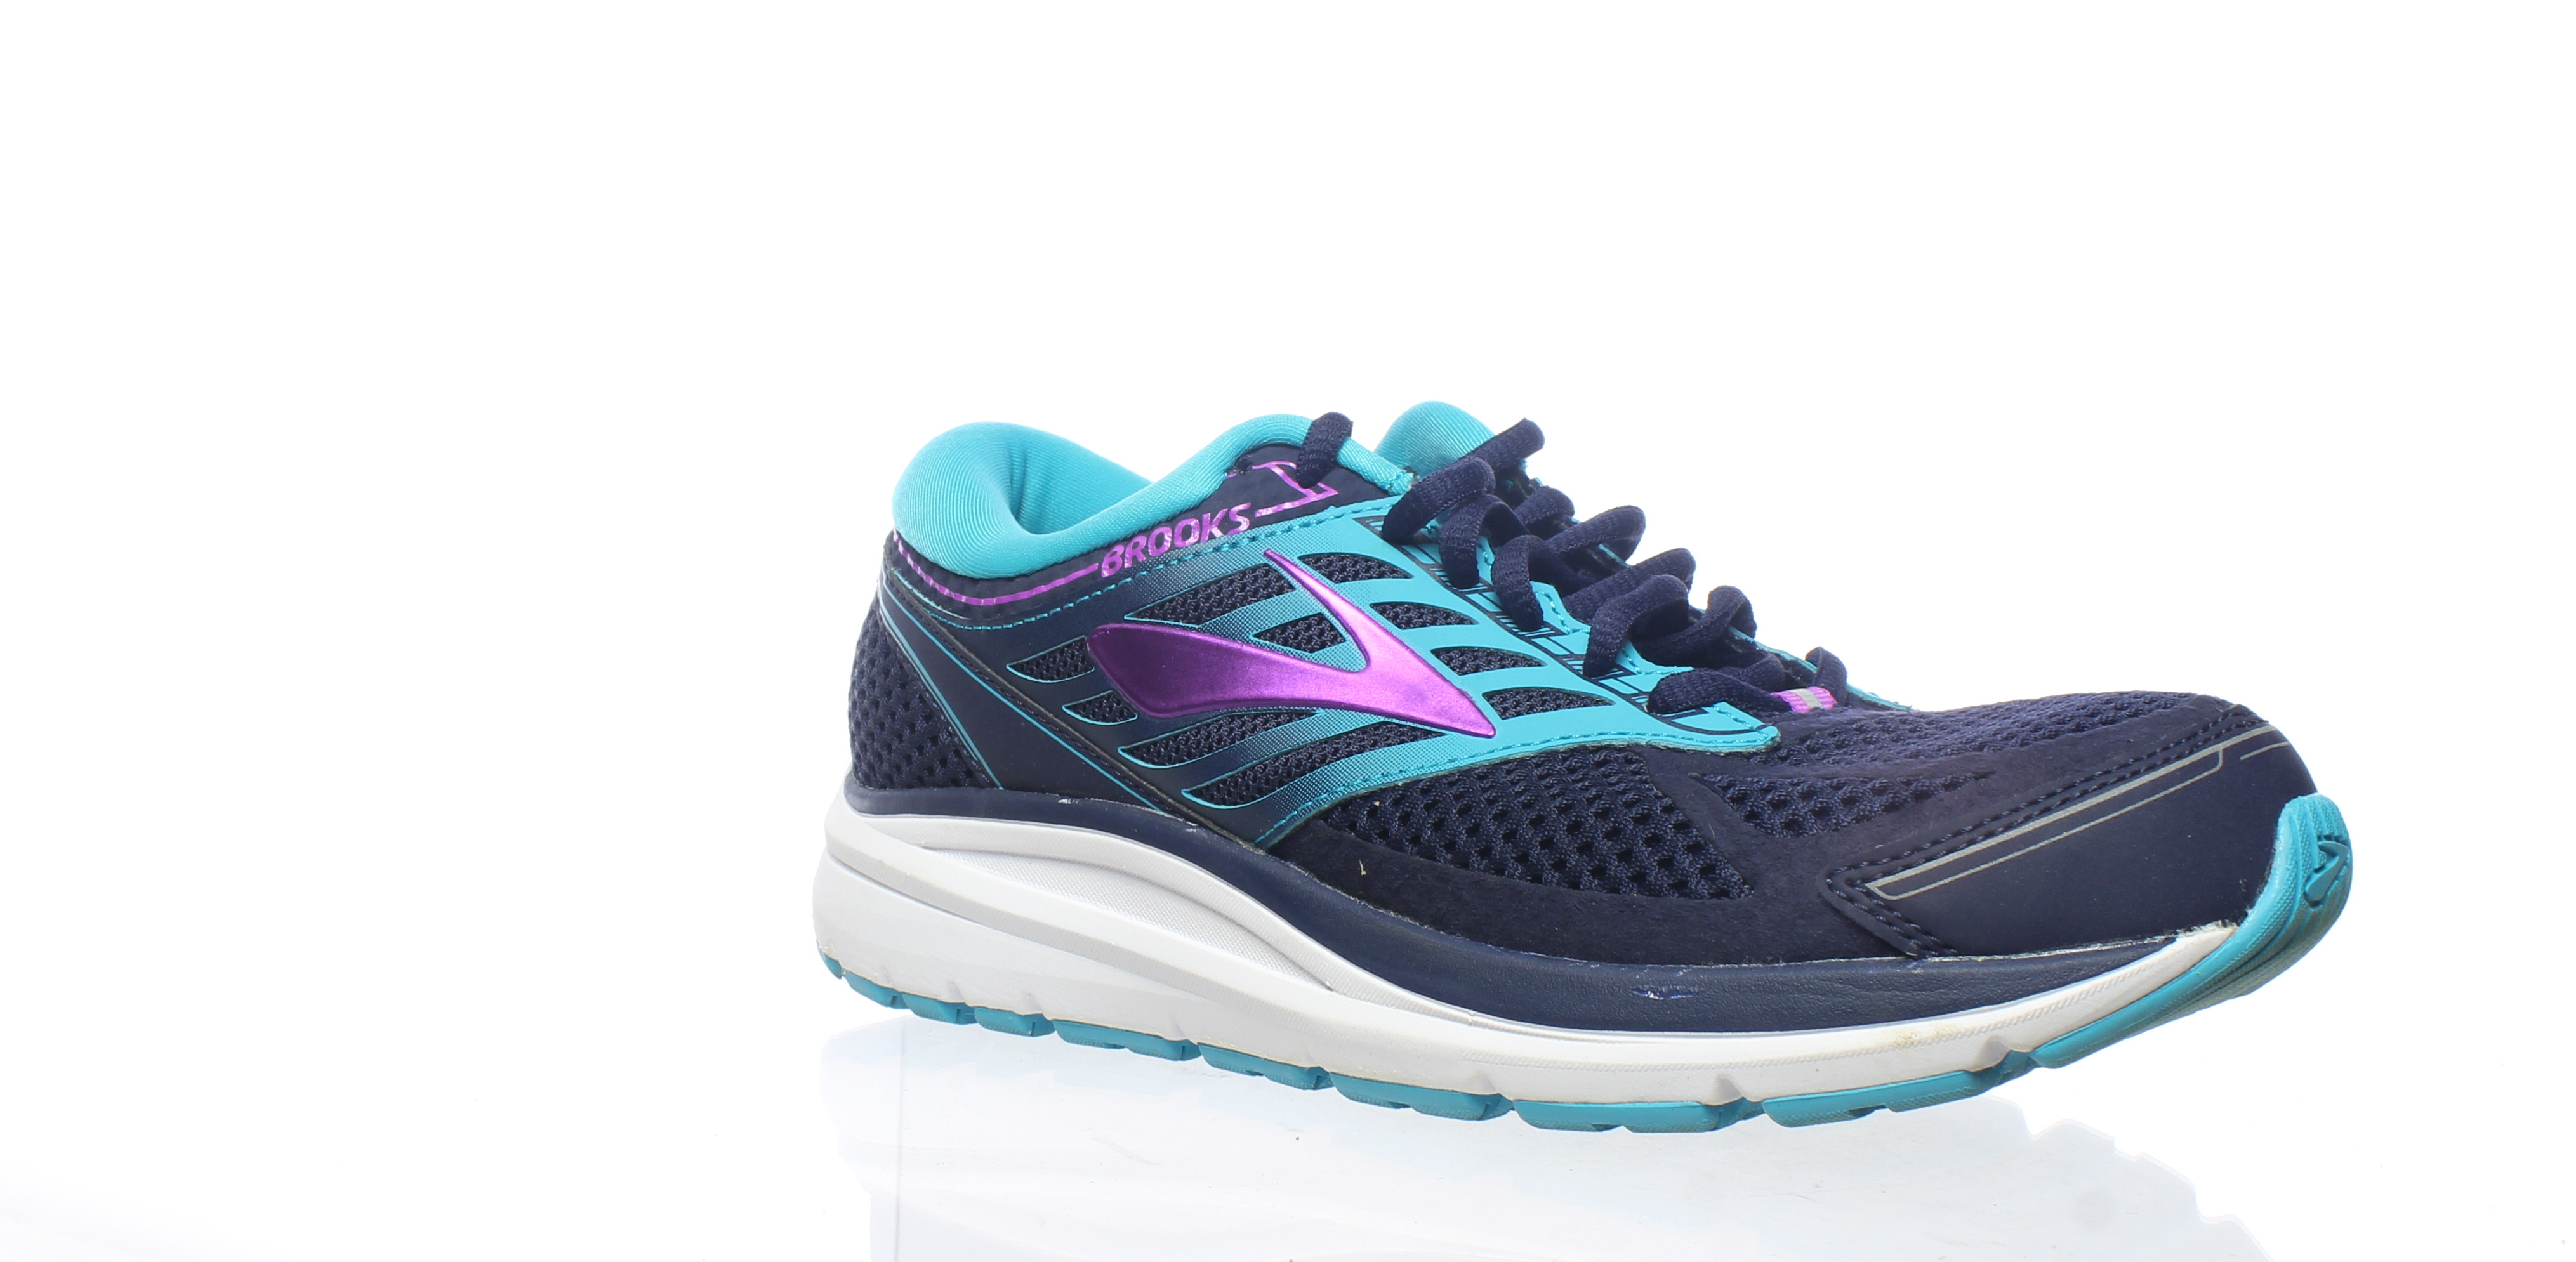 220097a1055 Details about Brooks Womens Addiction 13 Blue Running Shoes Size 9 (225154)